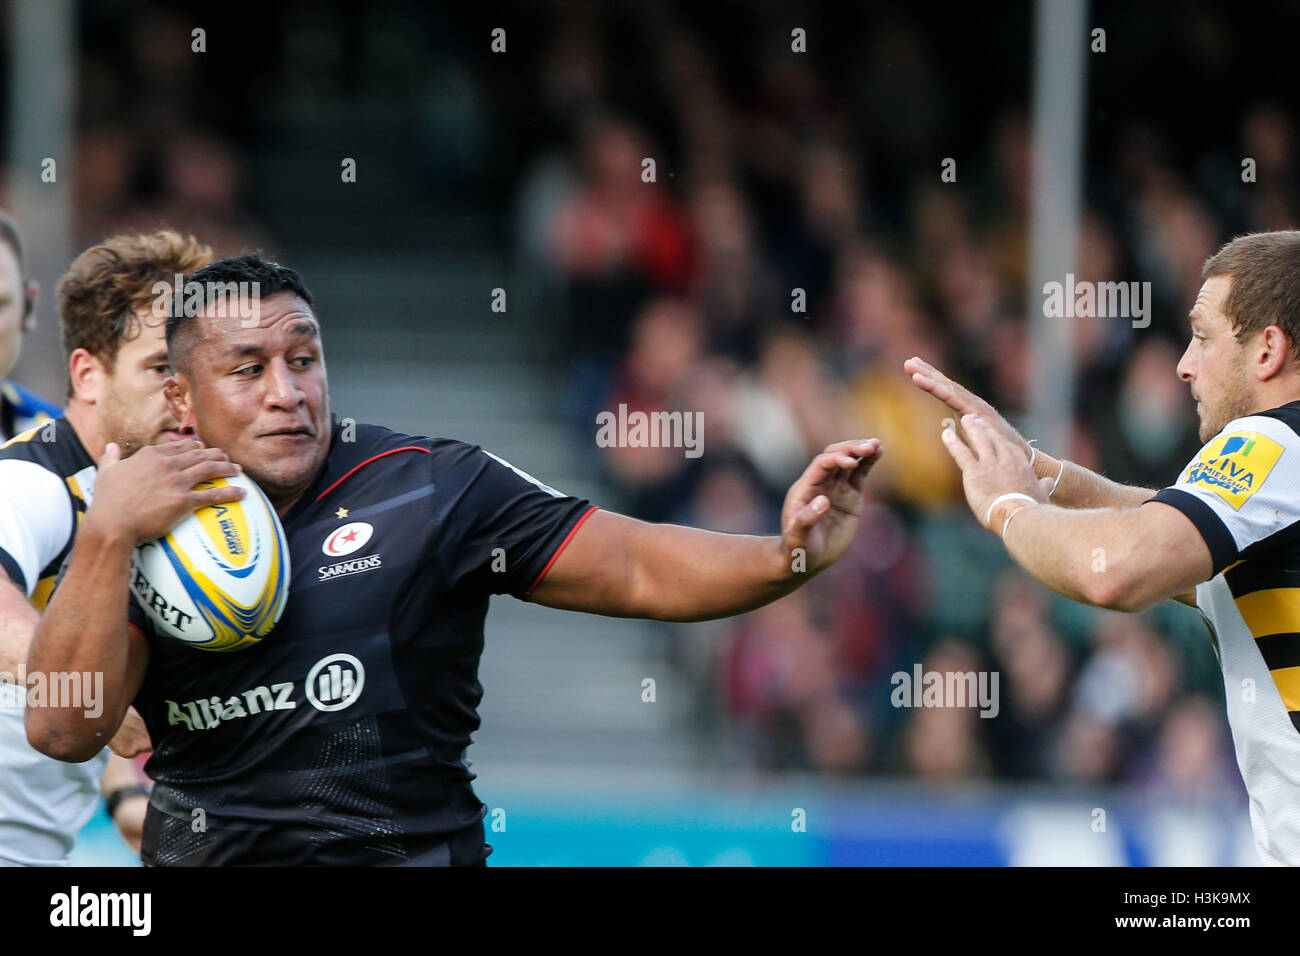 Barnet Copthall, London, UK. 09th Oct, 2016. Aviva Premiership Rugby. Saracens versus Wasps. Mako Vunipola of Saracens Stock Foto